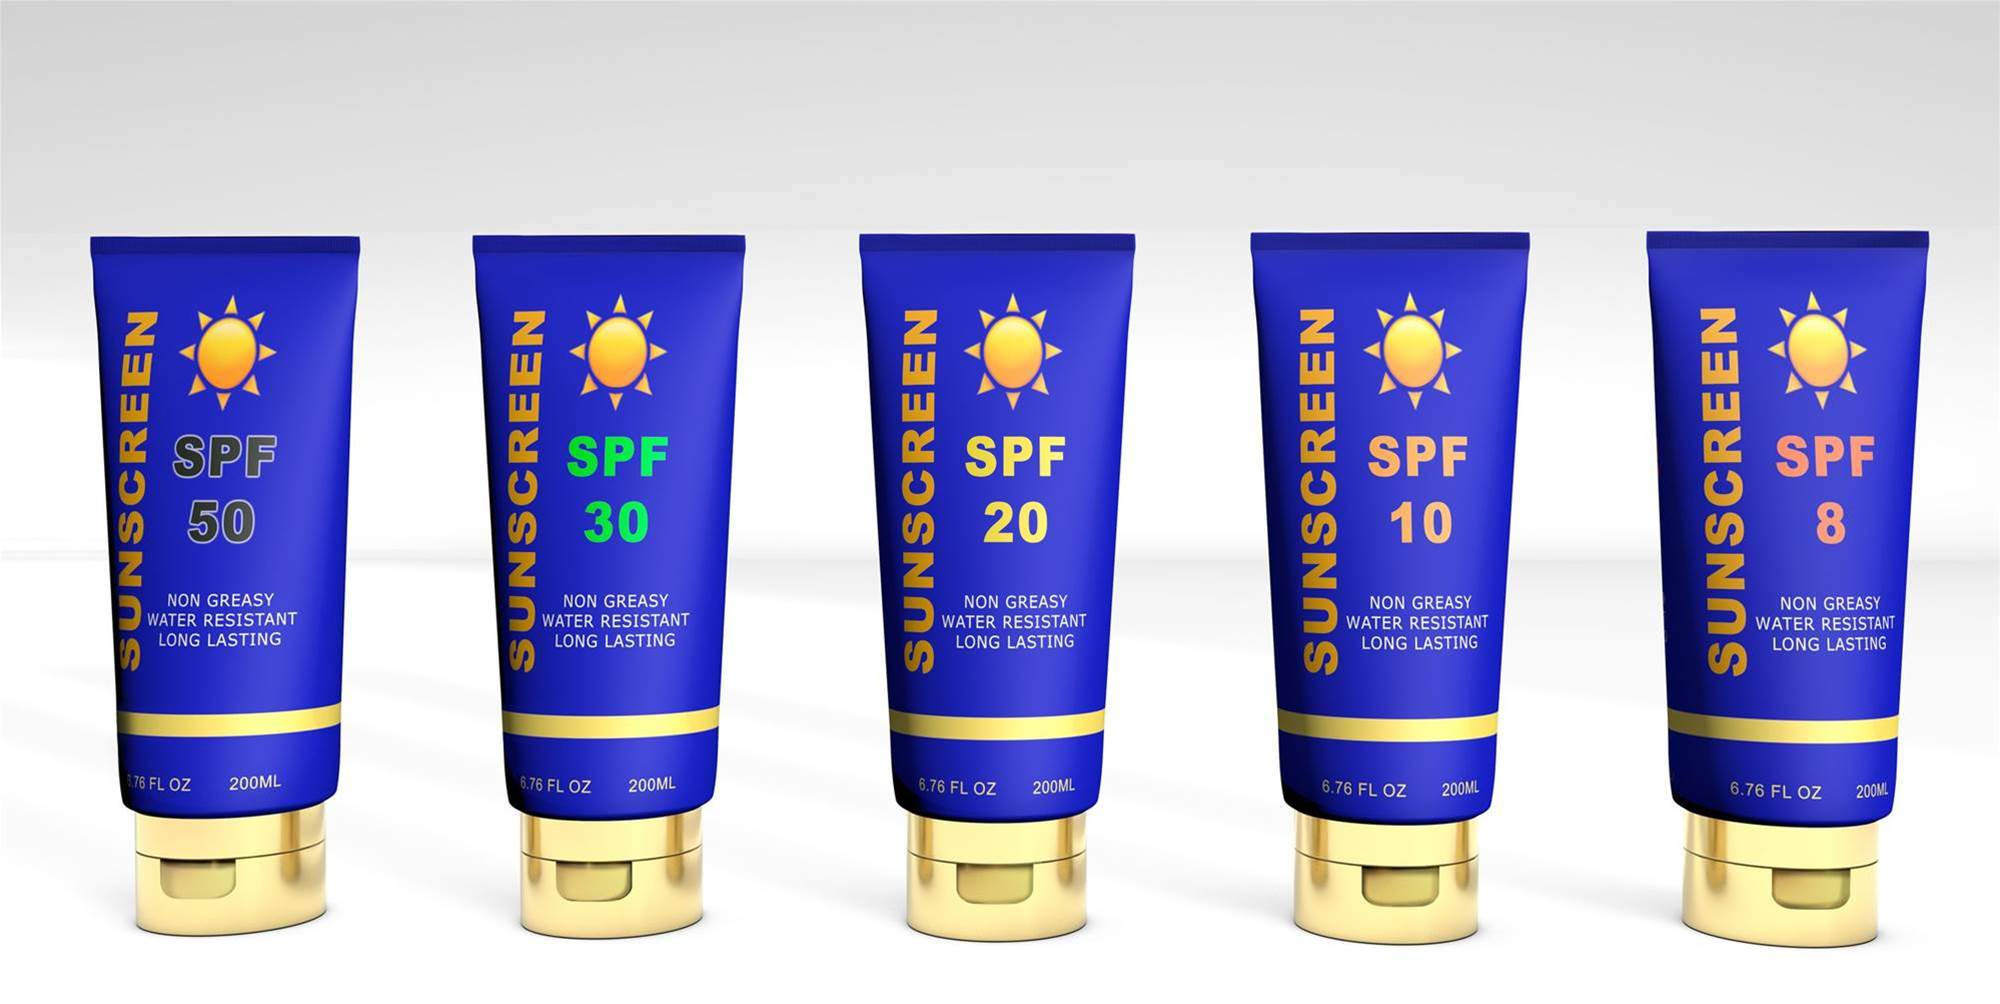 How High of an SPF Does Your Sunscreen Actually Need?